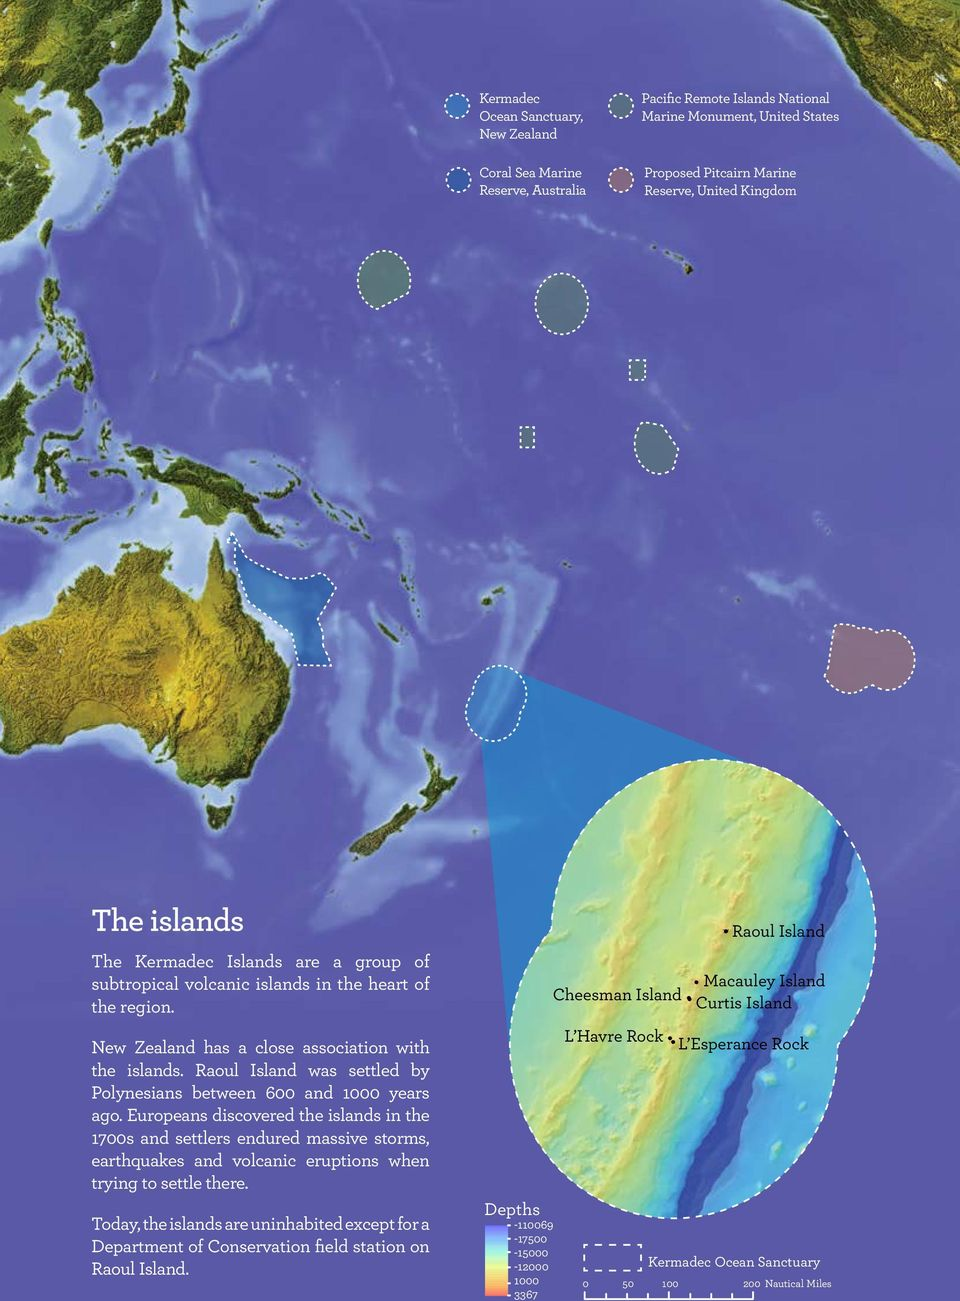 New Zealand has a close association with the islands. Raoul Island was settled by Polynesians between 600 and 1000 years ago.